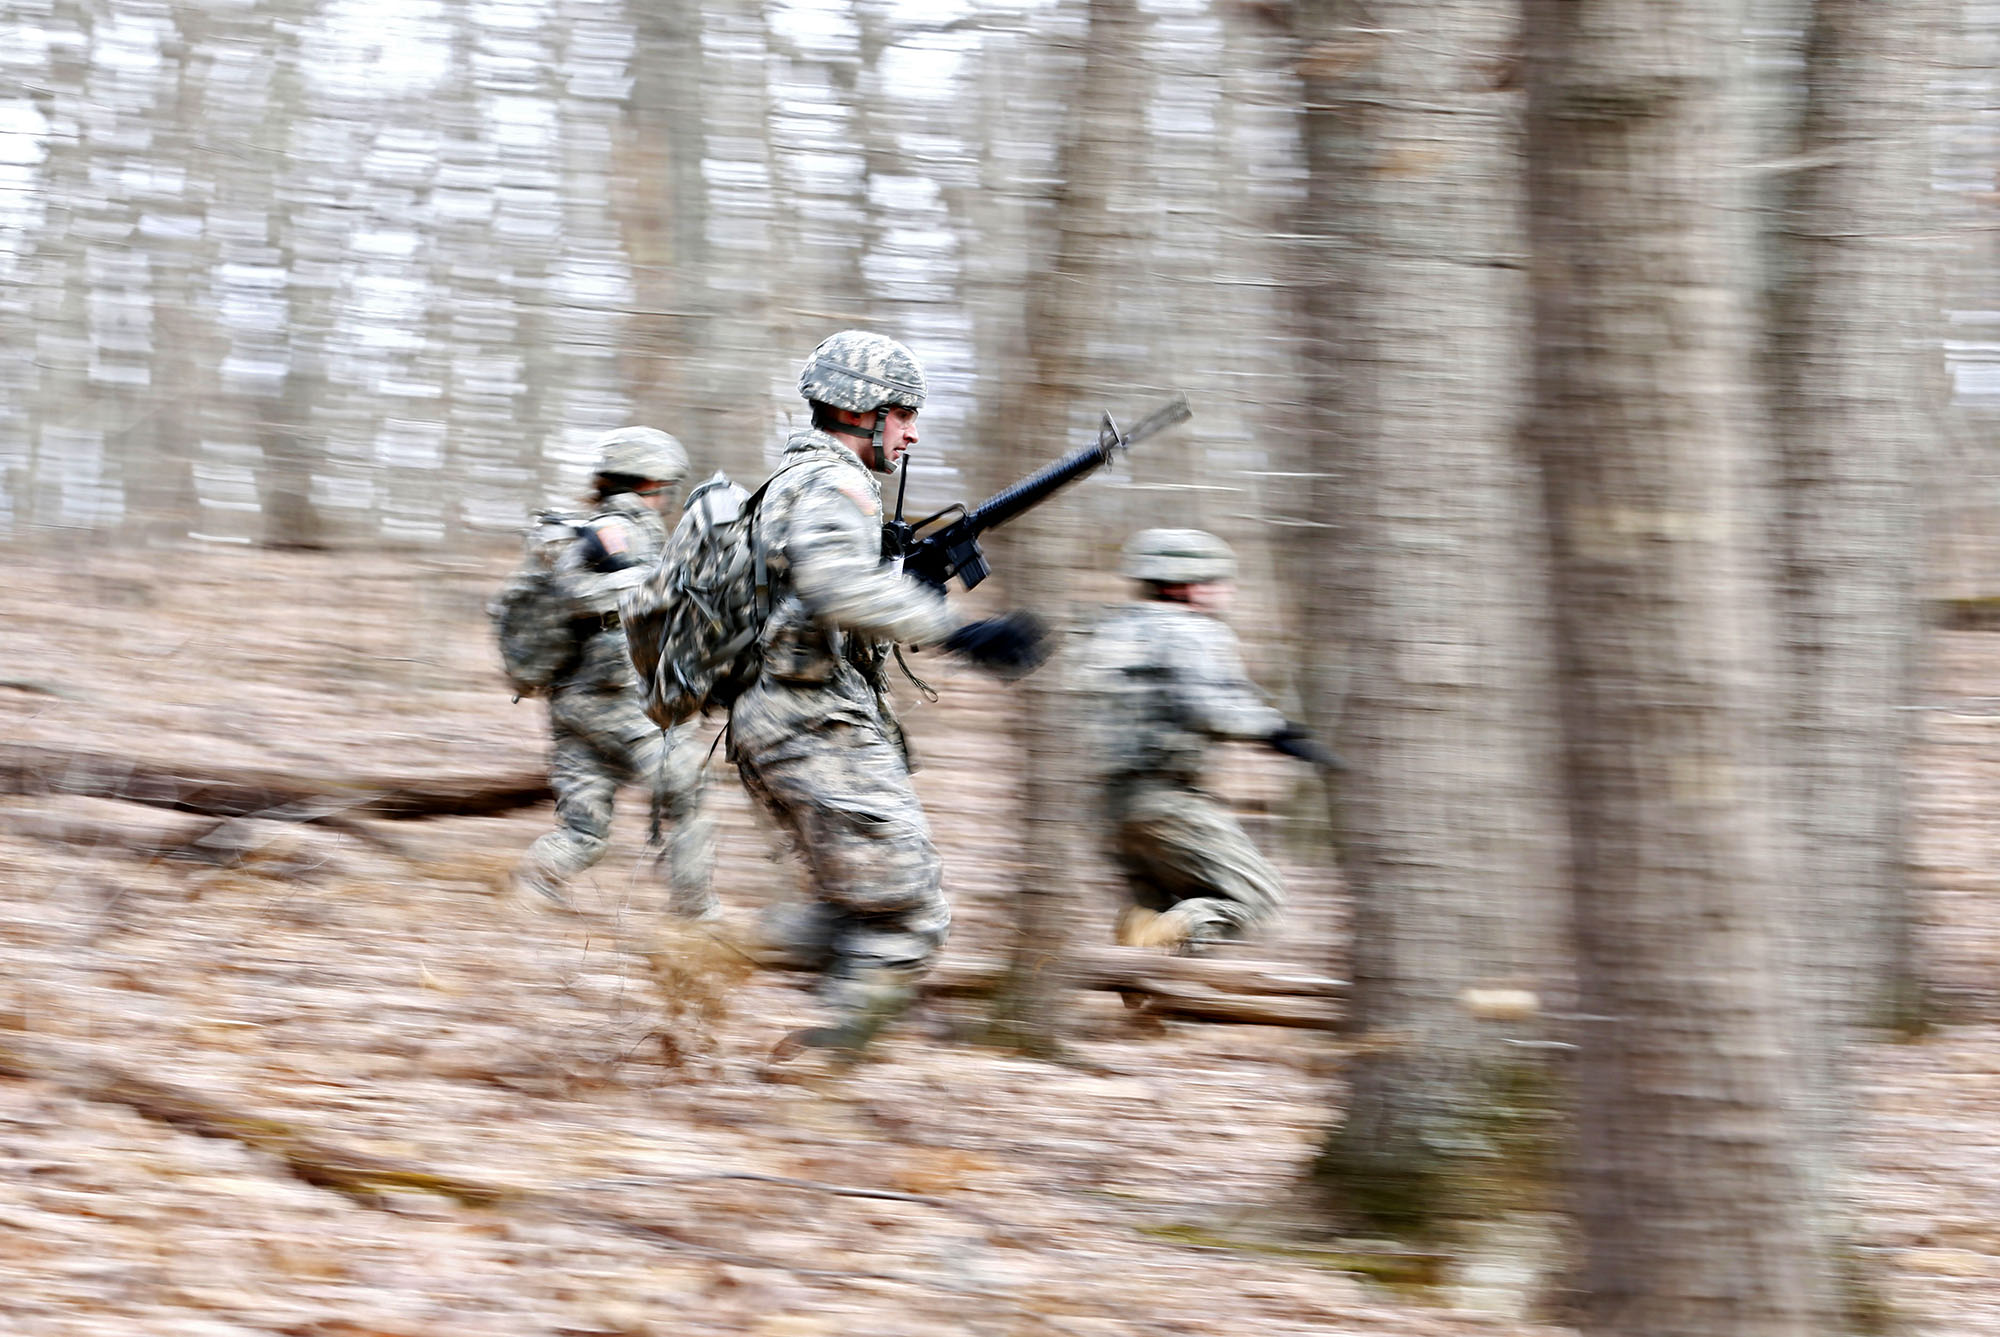 Army ROTC cadets drill at the University of Virginia. The program has been designated as the recipient of the annual MacArthur Award for the 4th ROTC BDE.